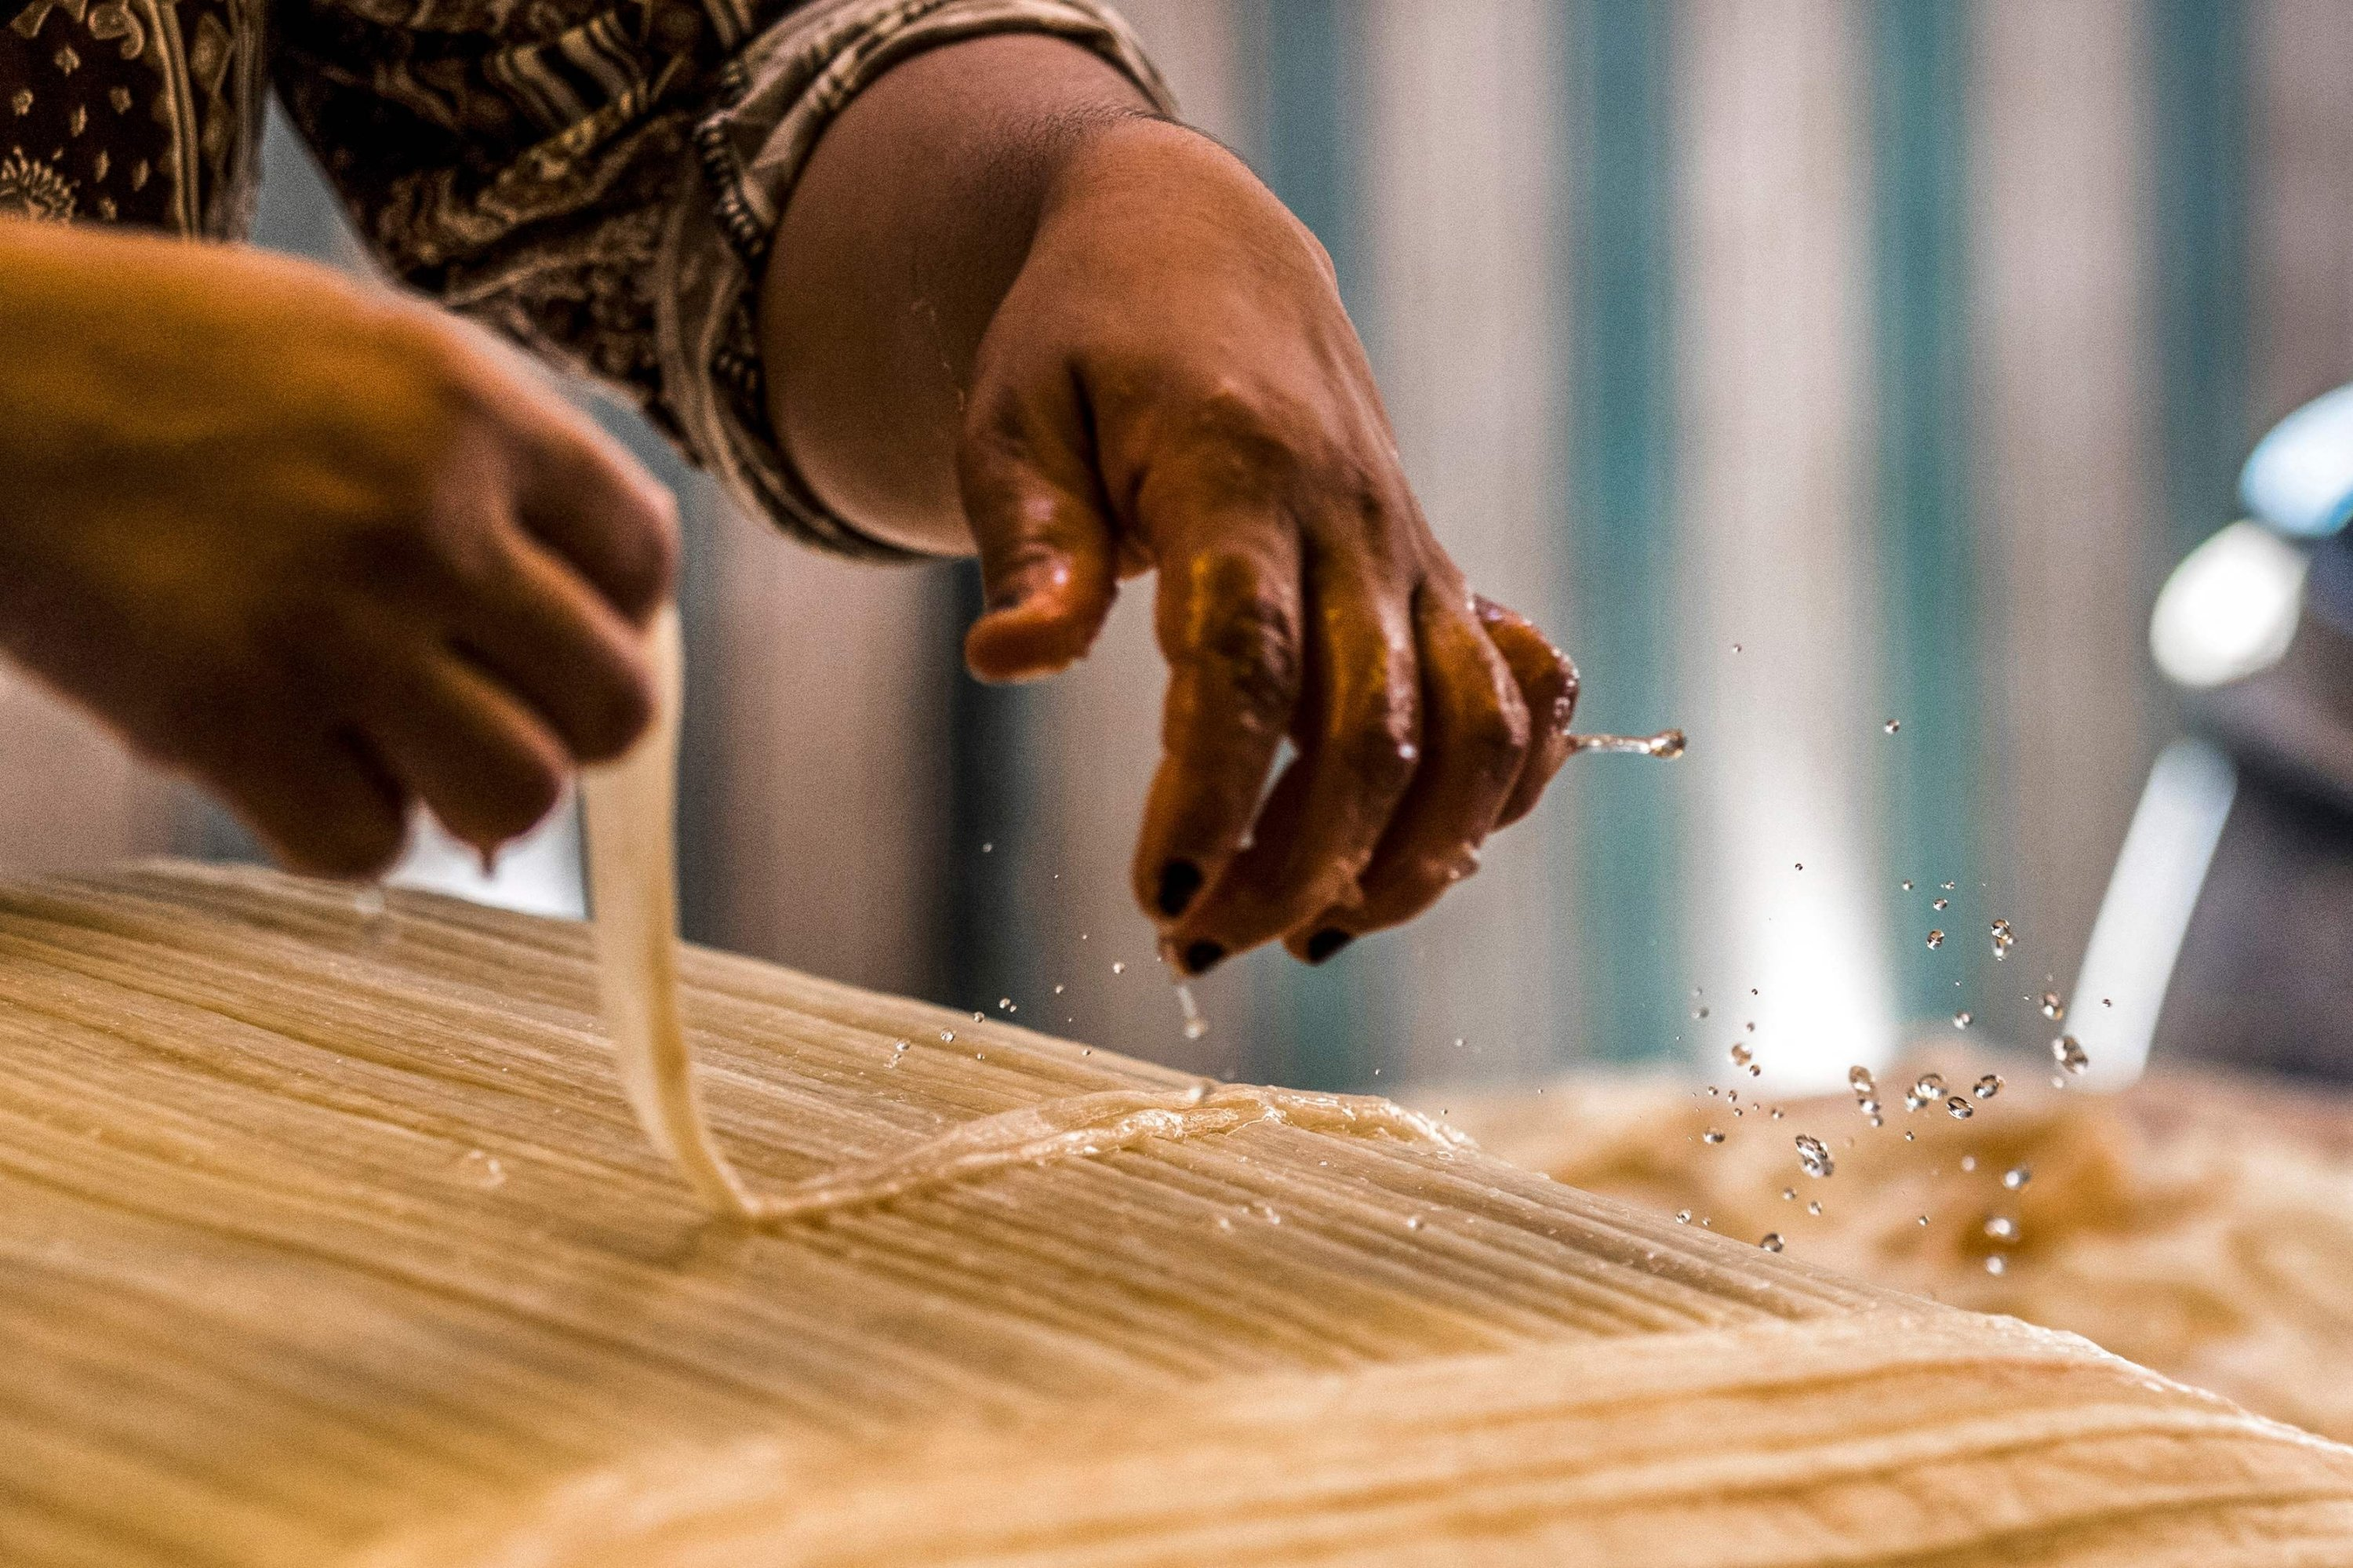 A woman prepares papyrus to compress and dry it at the workshop in the village of al-Qaramous in Sharqiyah province, in Egypt